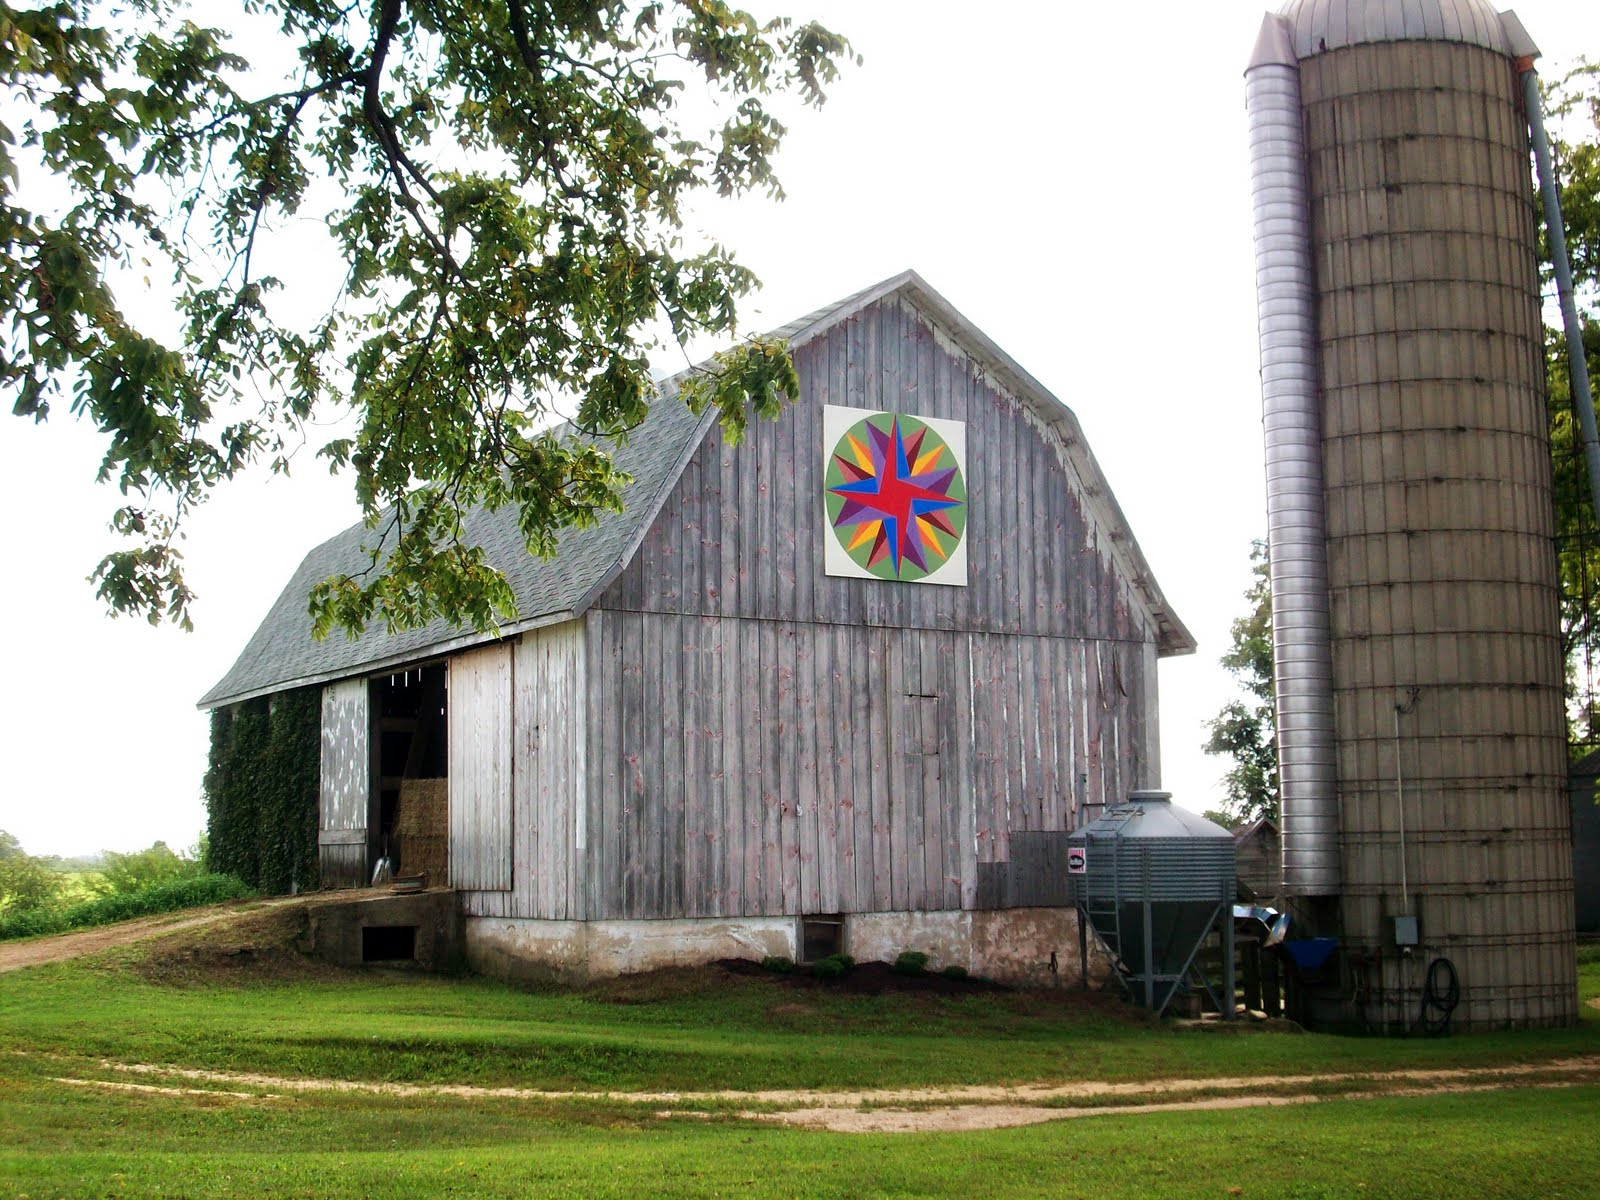 Barn Quilts and the American Quilt Trail: September 2011